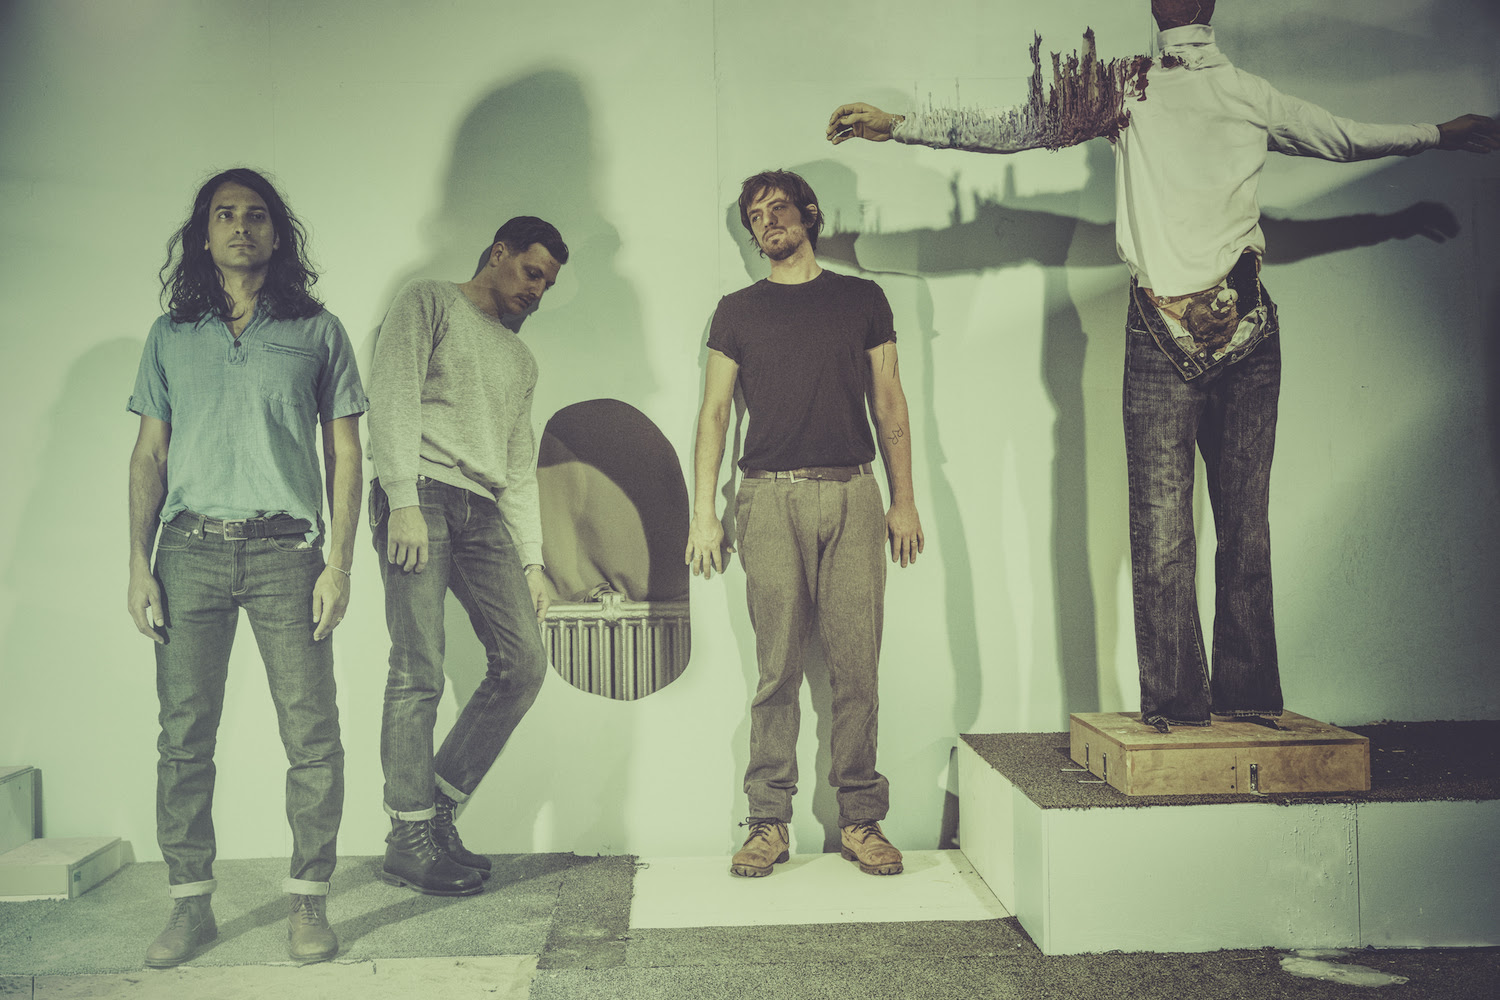 Yeasayer announce new fall tour dates, starting October first in Flushing Meadows, NY